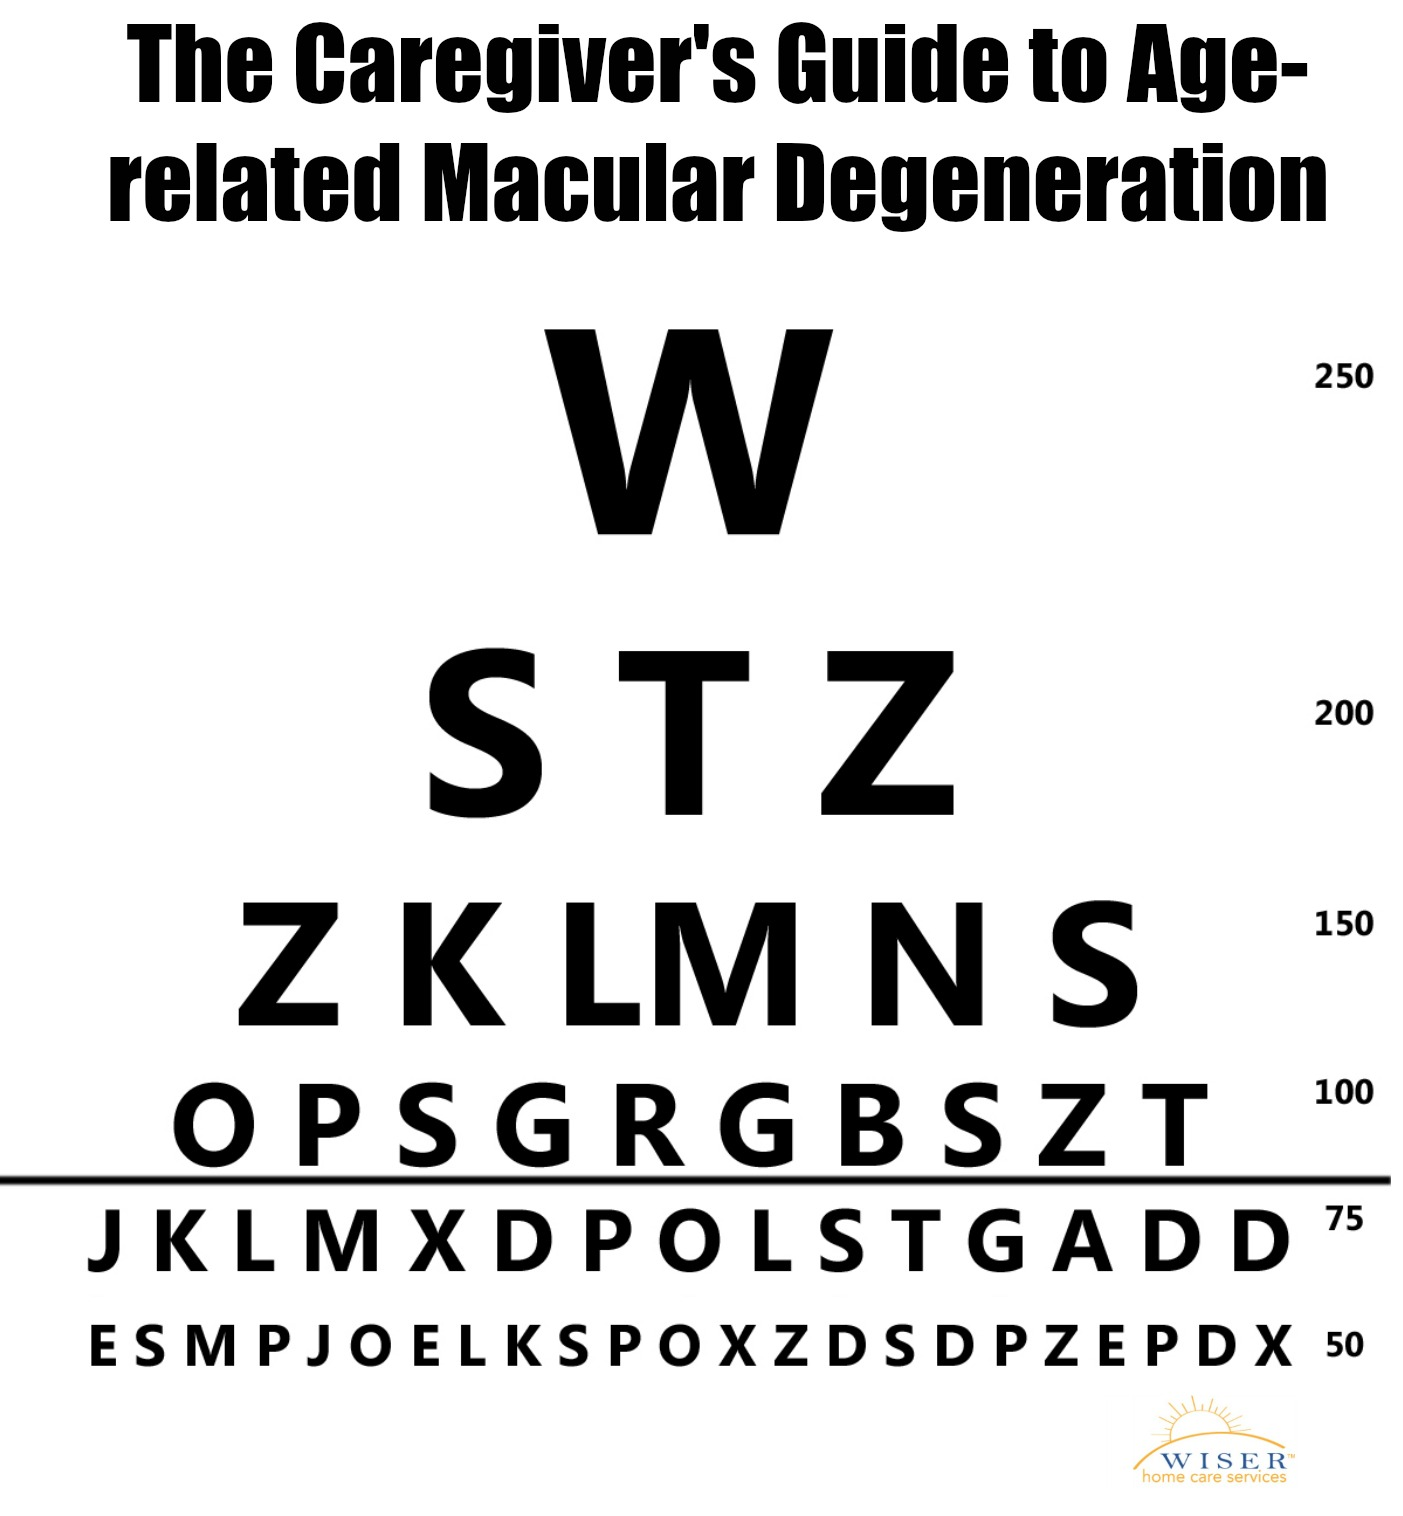 For the last 27 years, the month of August has become synonymously known as National Eye Exam Month. This week we explore Age-related Macular Degeneration.